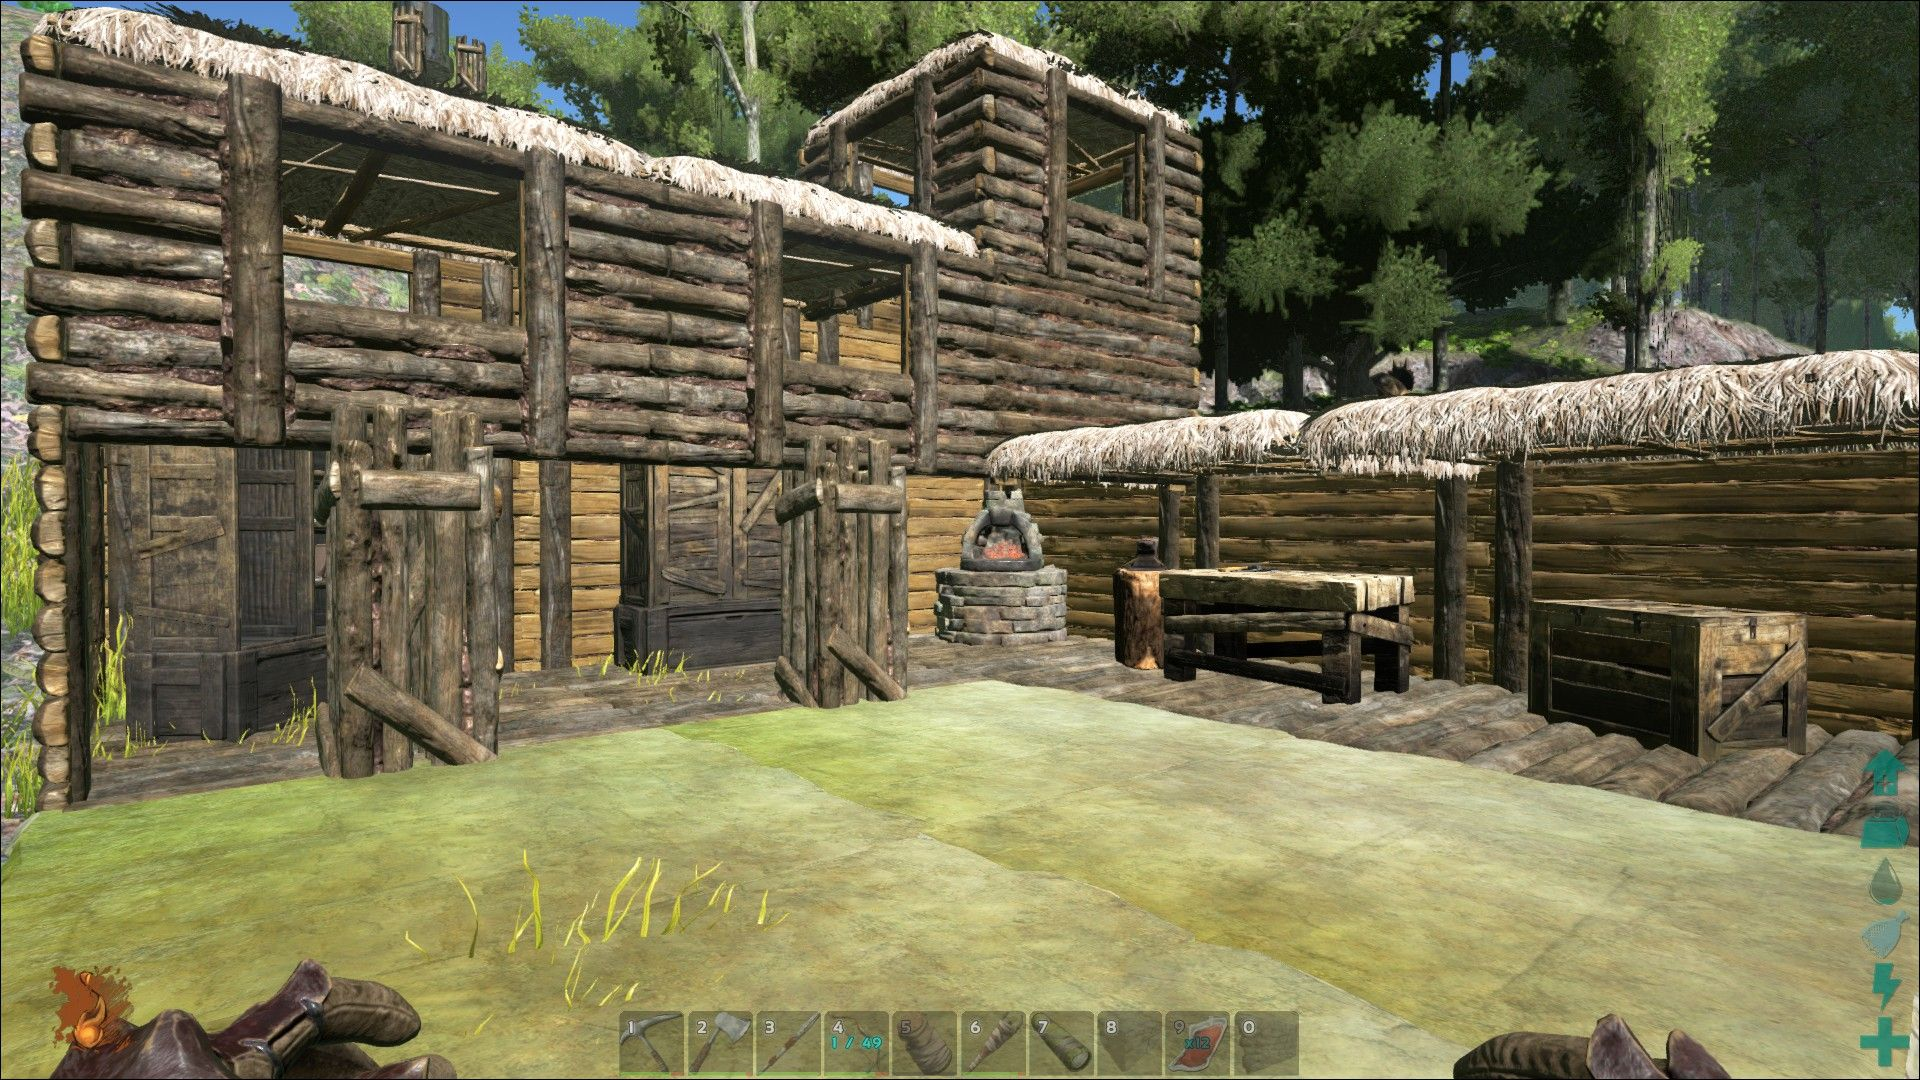 Gives Me An Idea For Building With A Courtyard Ark Survival Evolved Game Ark Survival Evolved Ark Survival Evolved Bases